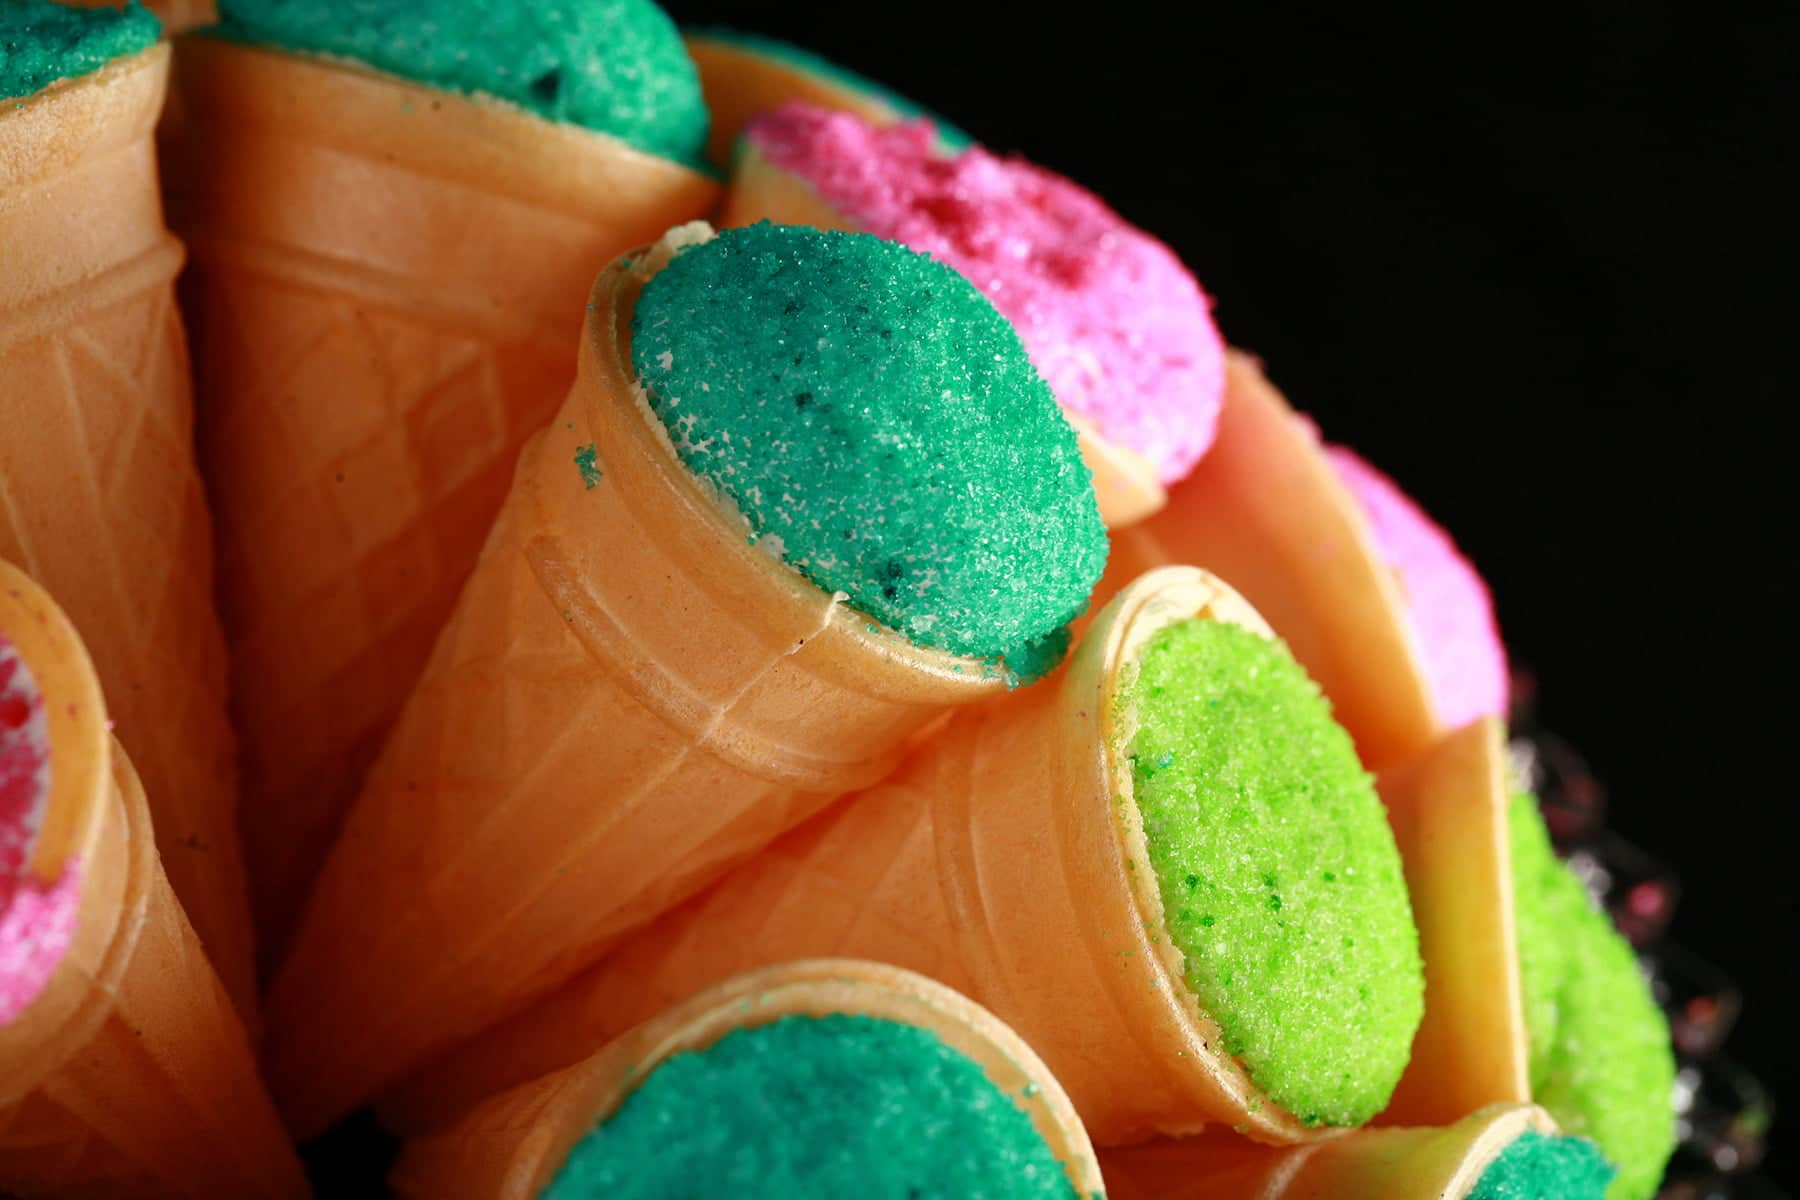 A pile of mini ice cream cones are arranged on a plate. The exposed marshmallow of each is coated in colourful sugar - hot pink, lime green, and teal.